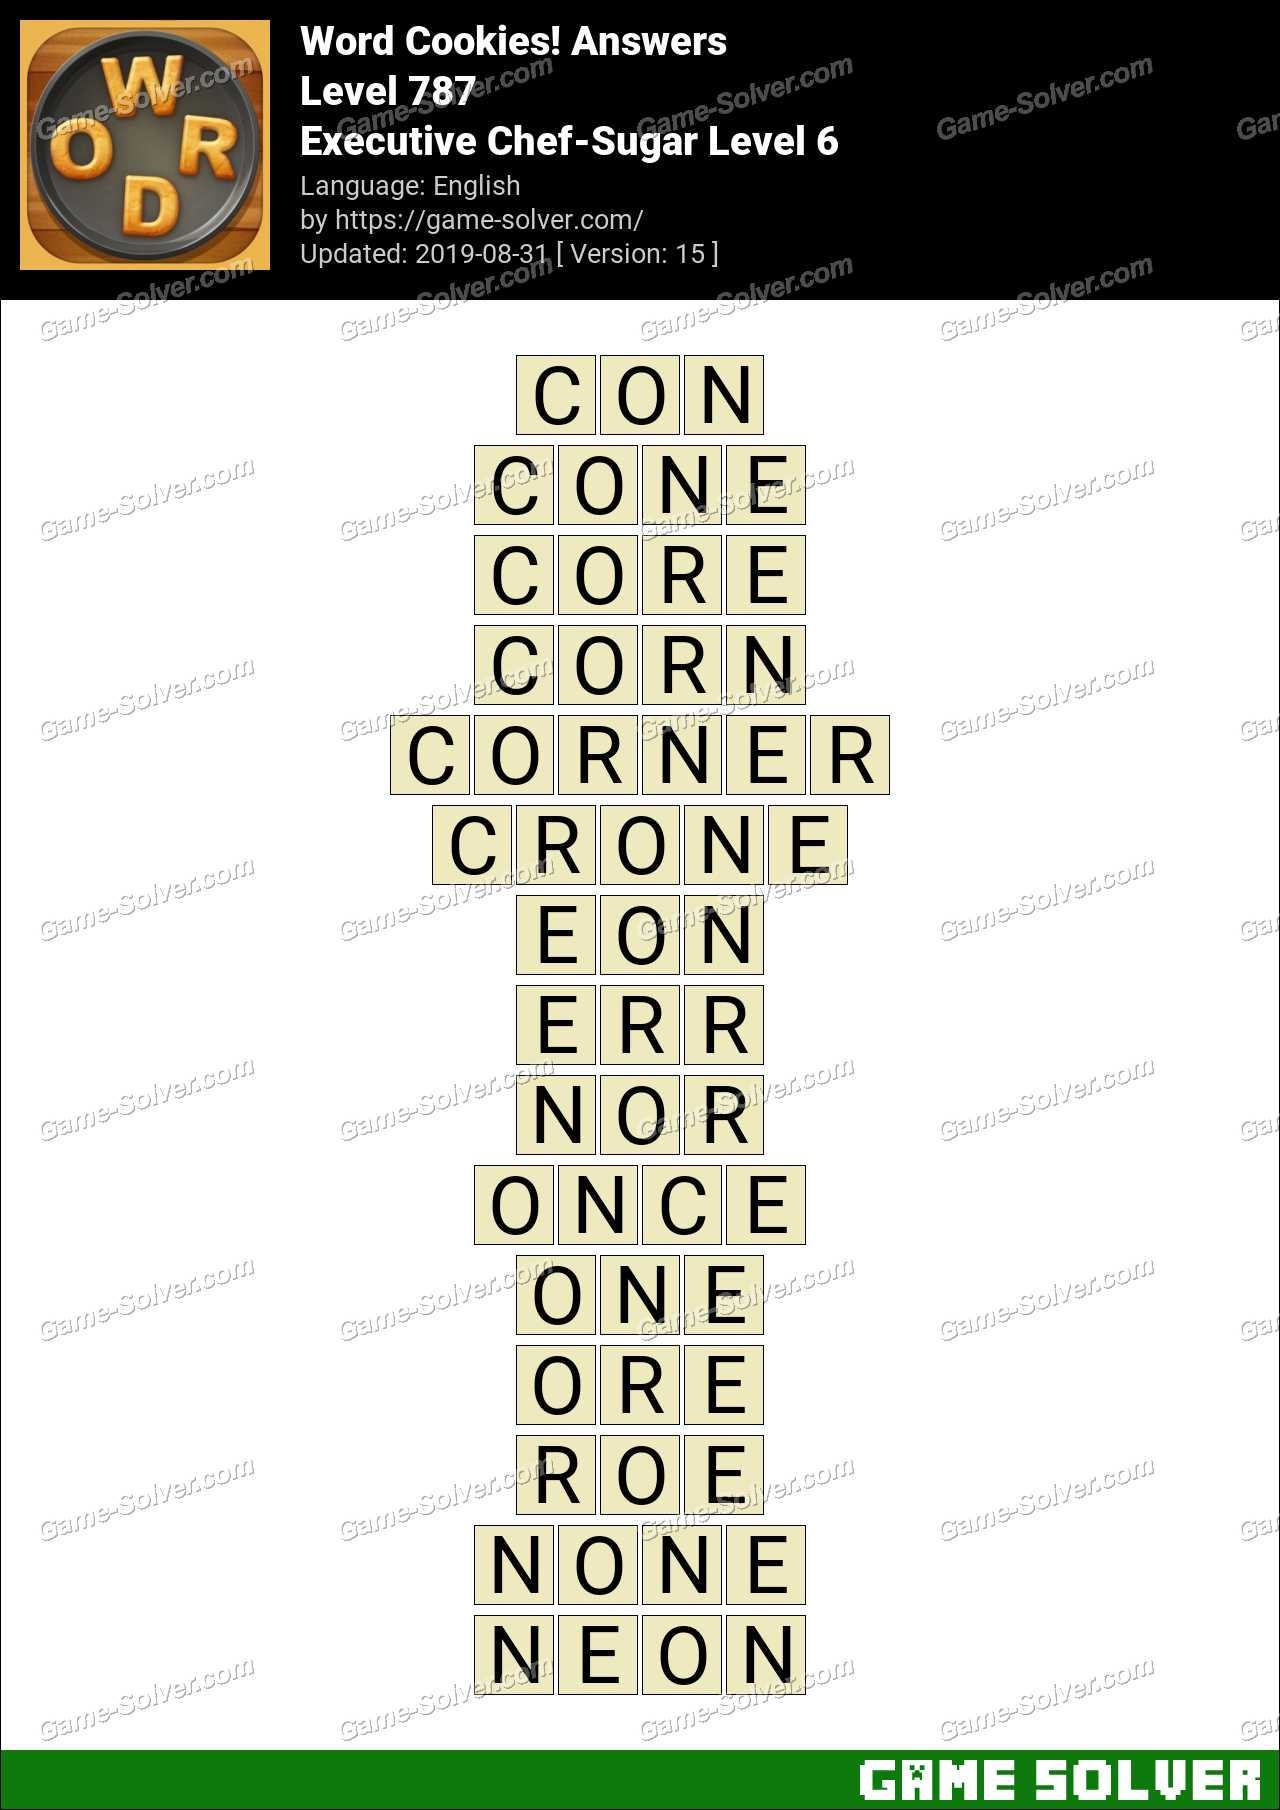 Word Cookies Executive Chef-Sugar Level 6 Answers